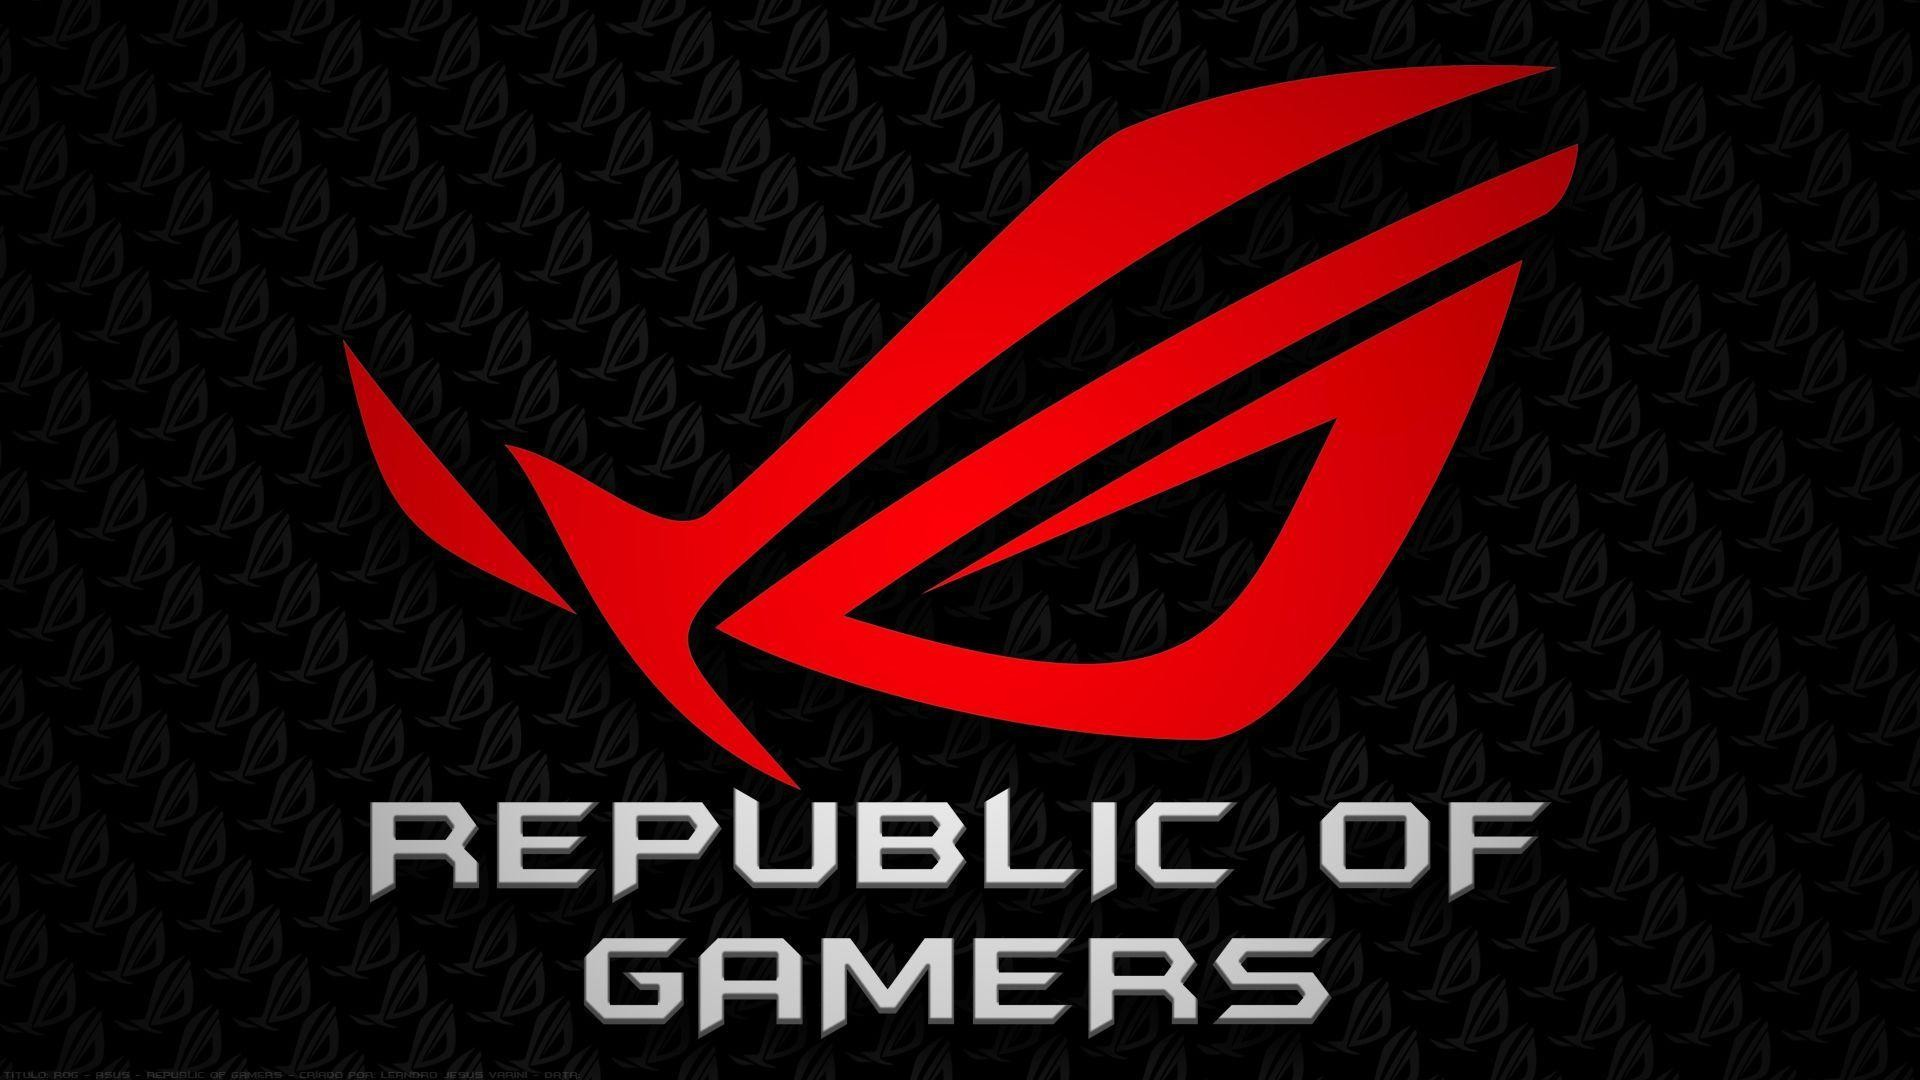 1920x1080 Republic Of Gamers Wallpaper 28442 Wallpapers HD | colourinwallpaper.